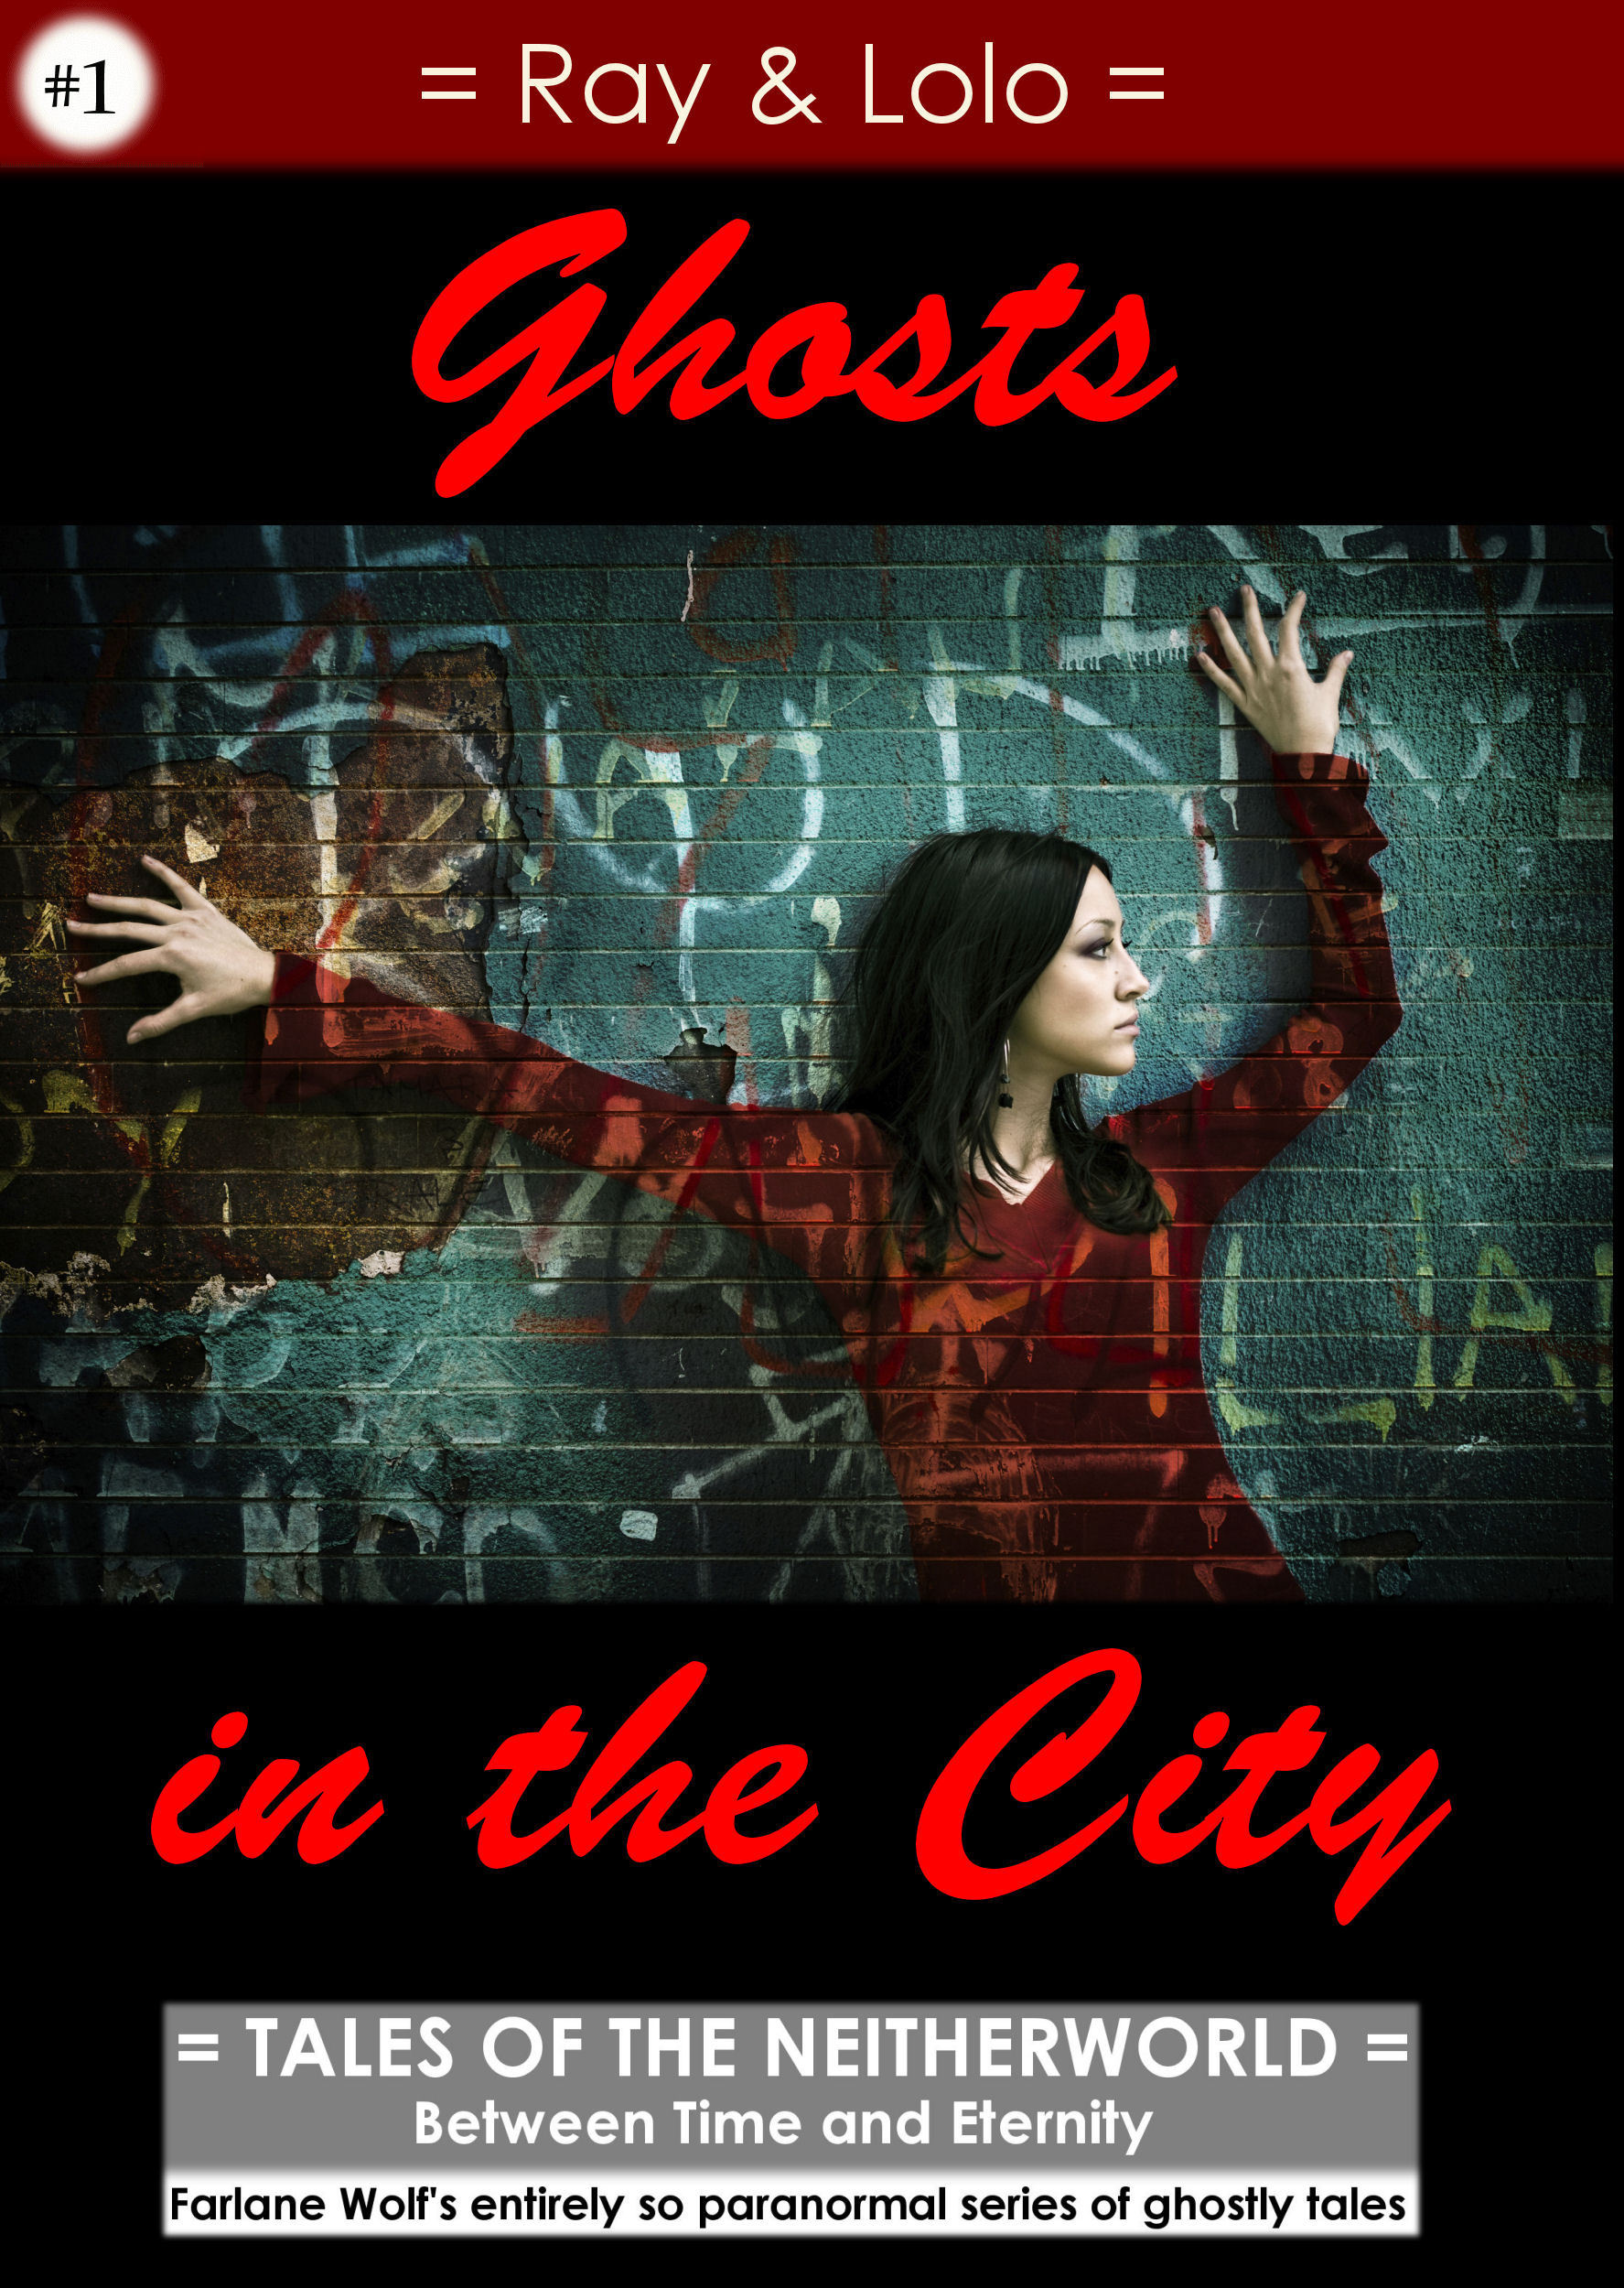 Ghosts in the City #1: Ray and Lolo